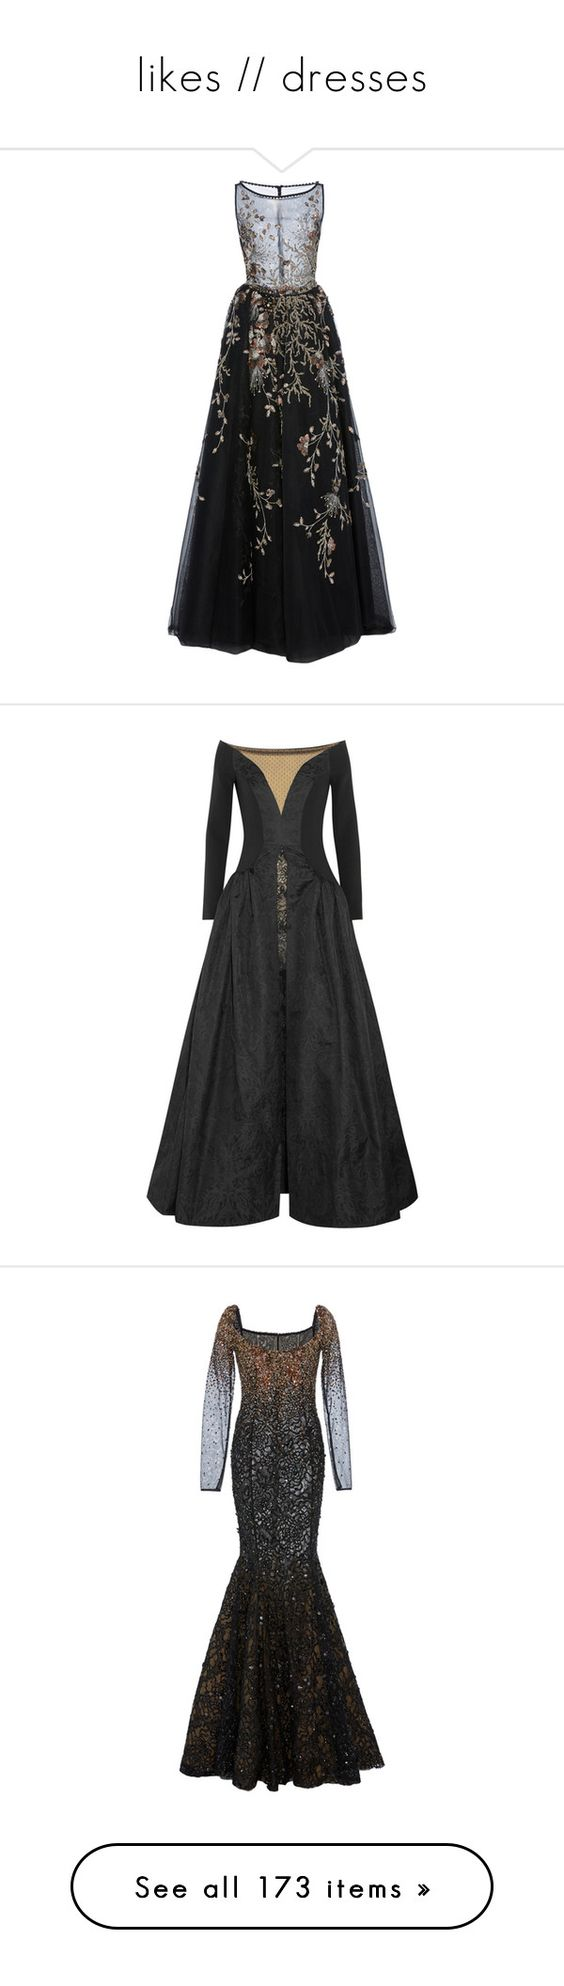 """""""likes // dresses"""" by echoes-of-reason ❤ liked on Polyvore featuring dresses, gowns, event, georges hobeika, black, ankle length skirt, sheer skirt maxi dress, embroidered long skirts, sheer evening dresses and long sheer skirt"""